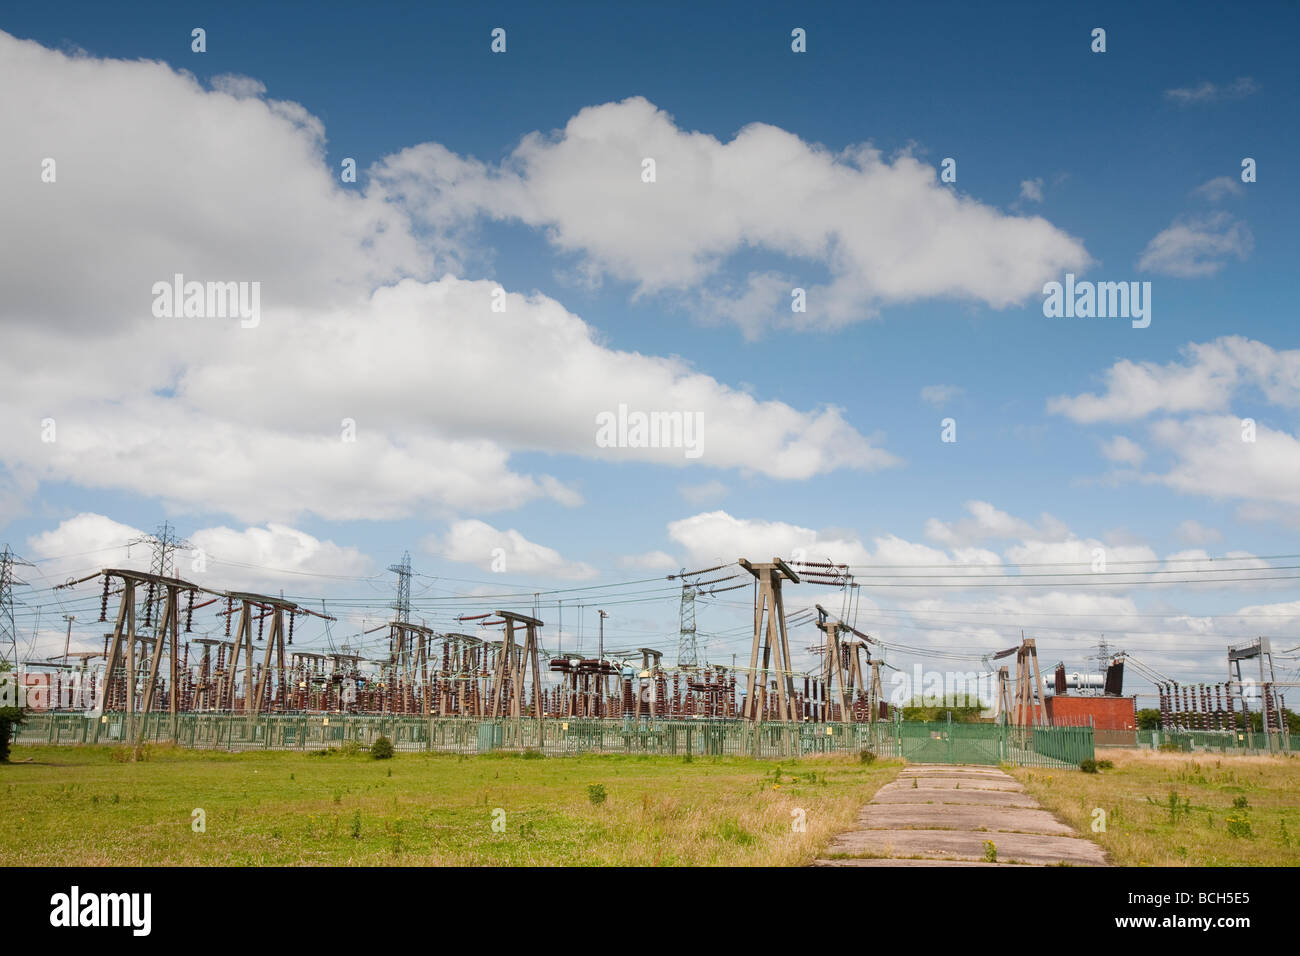 An electricity sub station on the outskirts of Manchester UK - Stock Image